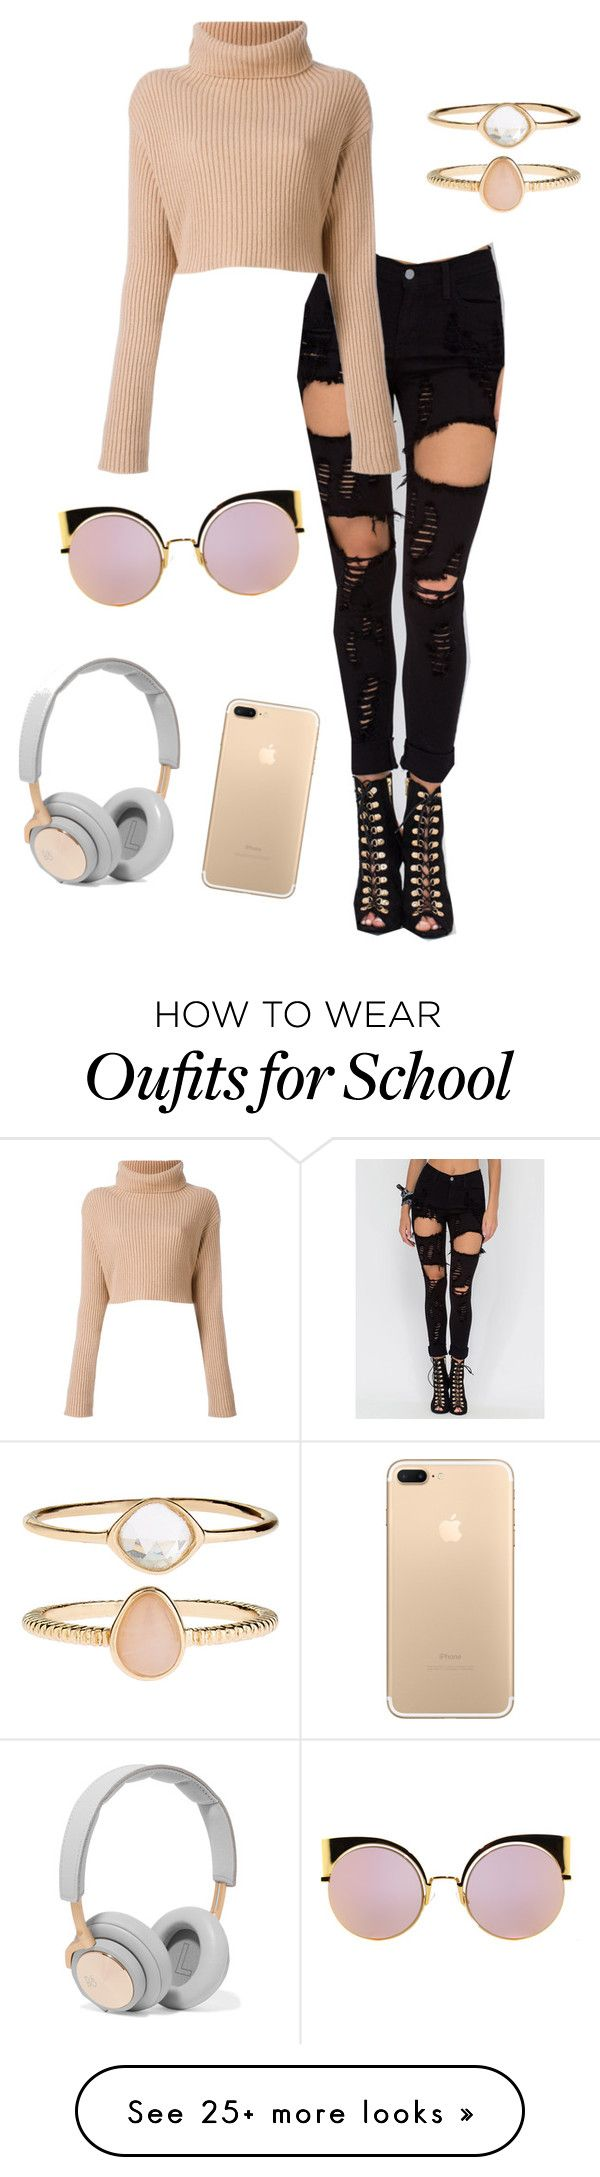 """""""School Look 2"""" by oliviahugo on Polyvore featuring Accessorize, Fendi and B&O Play"""